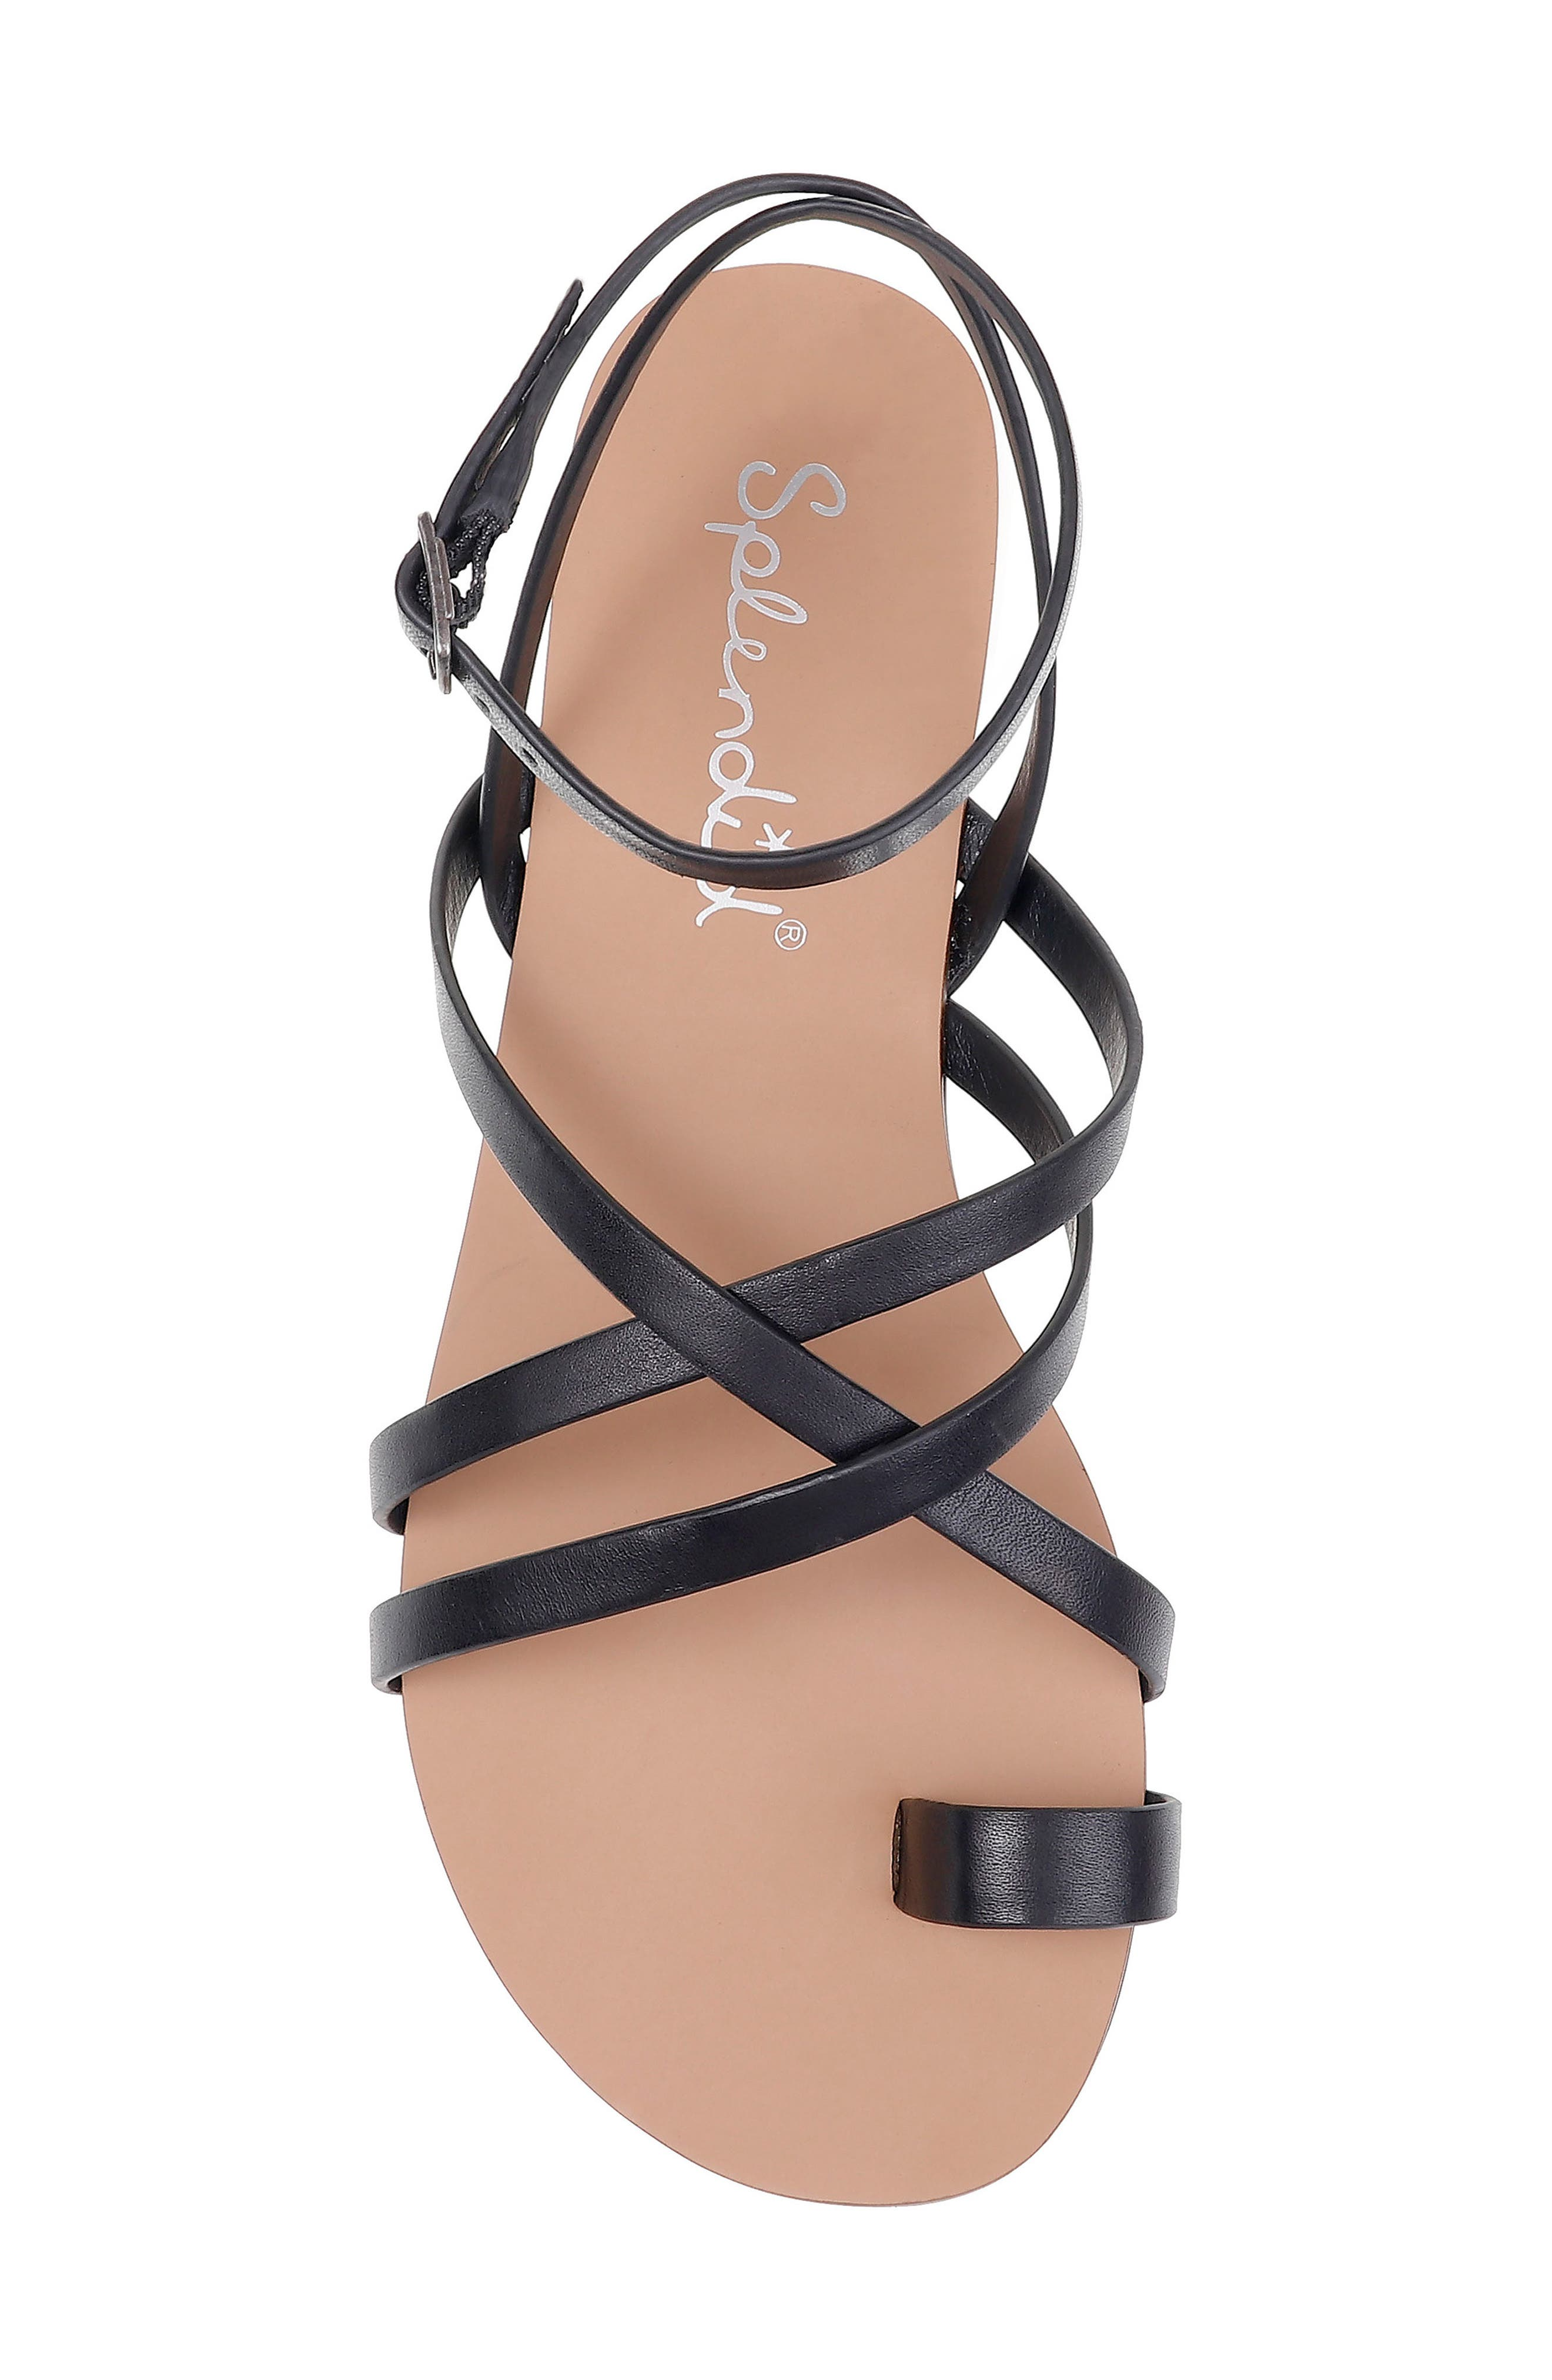 SPLENDID, Sully Strappy Toe Loop Sandal, Alternate thumbnail 5, color, BLACK LEATHER